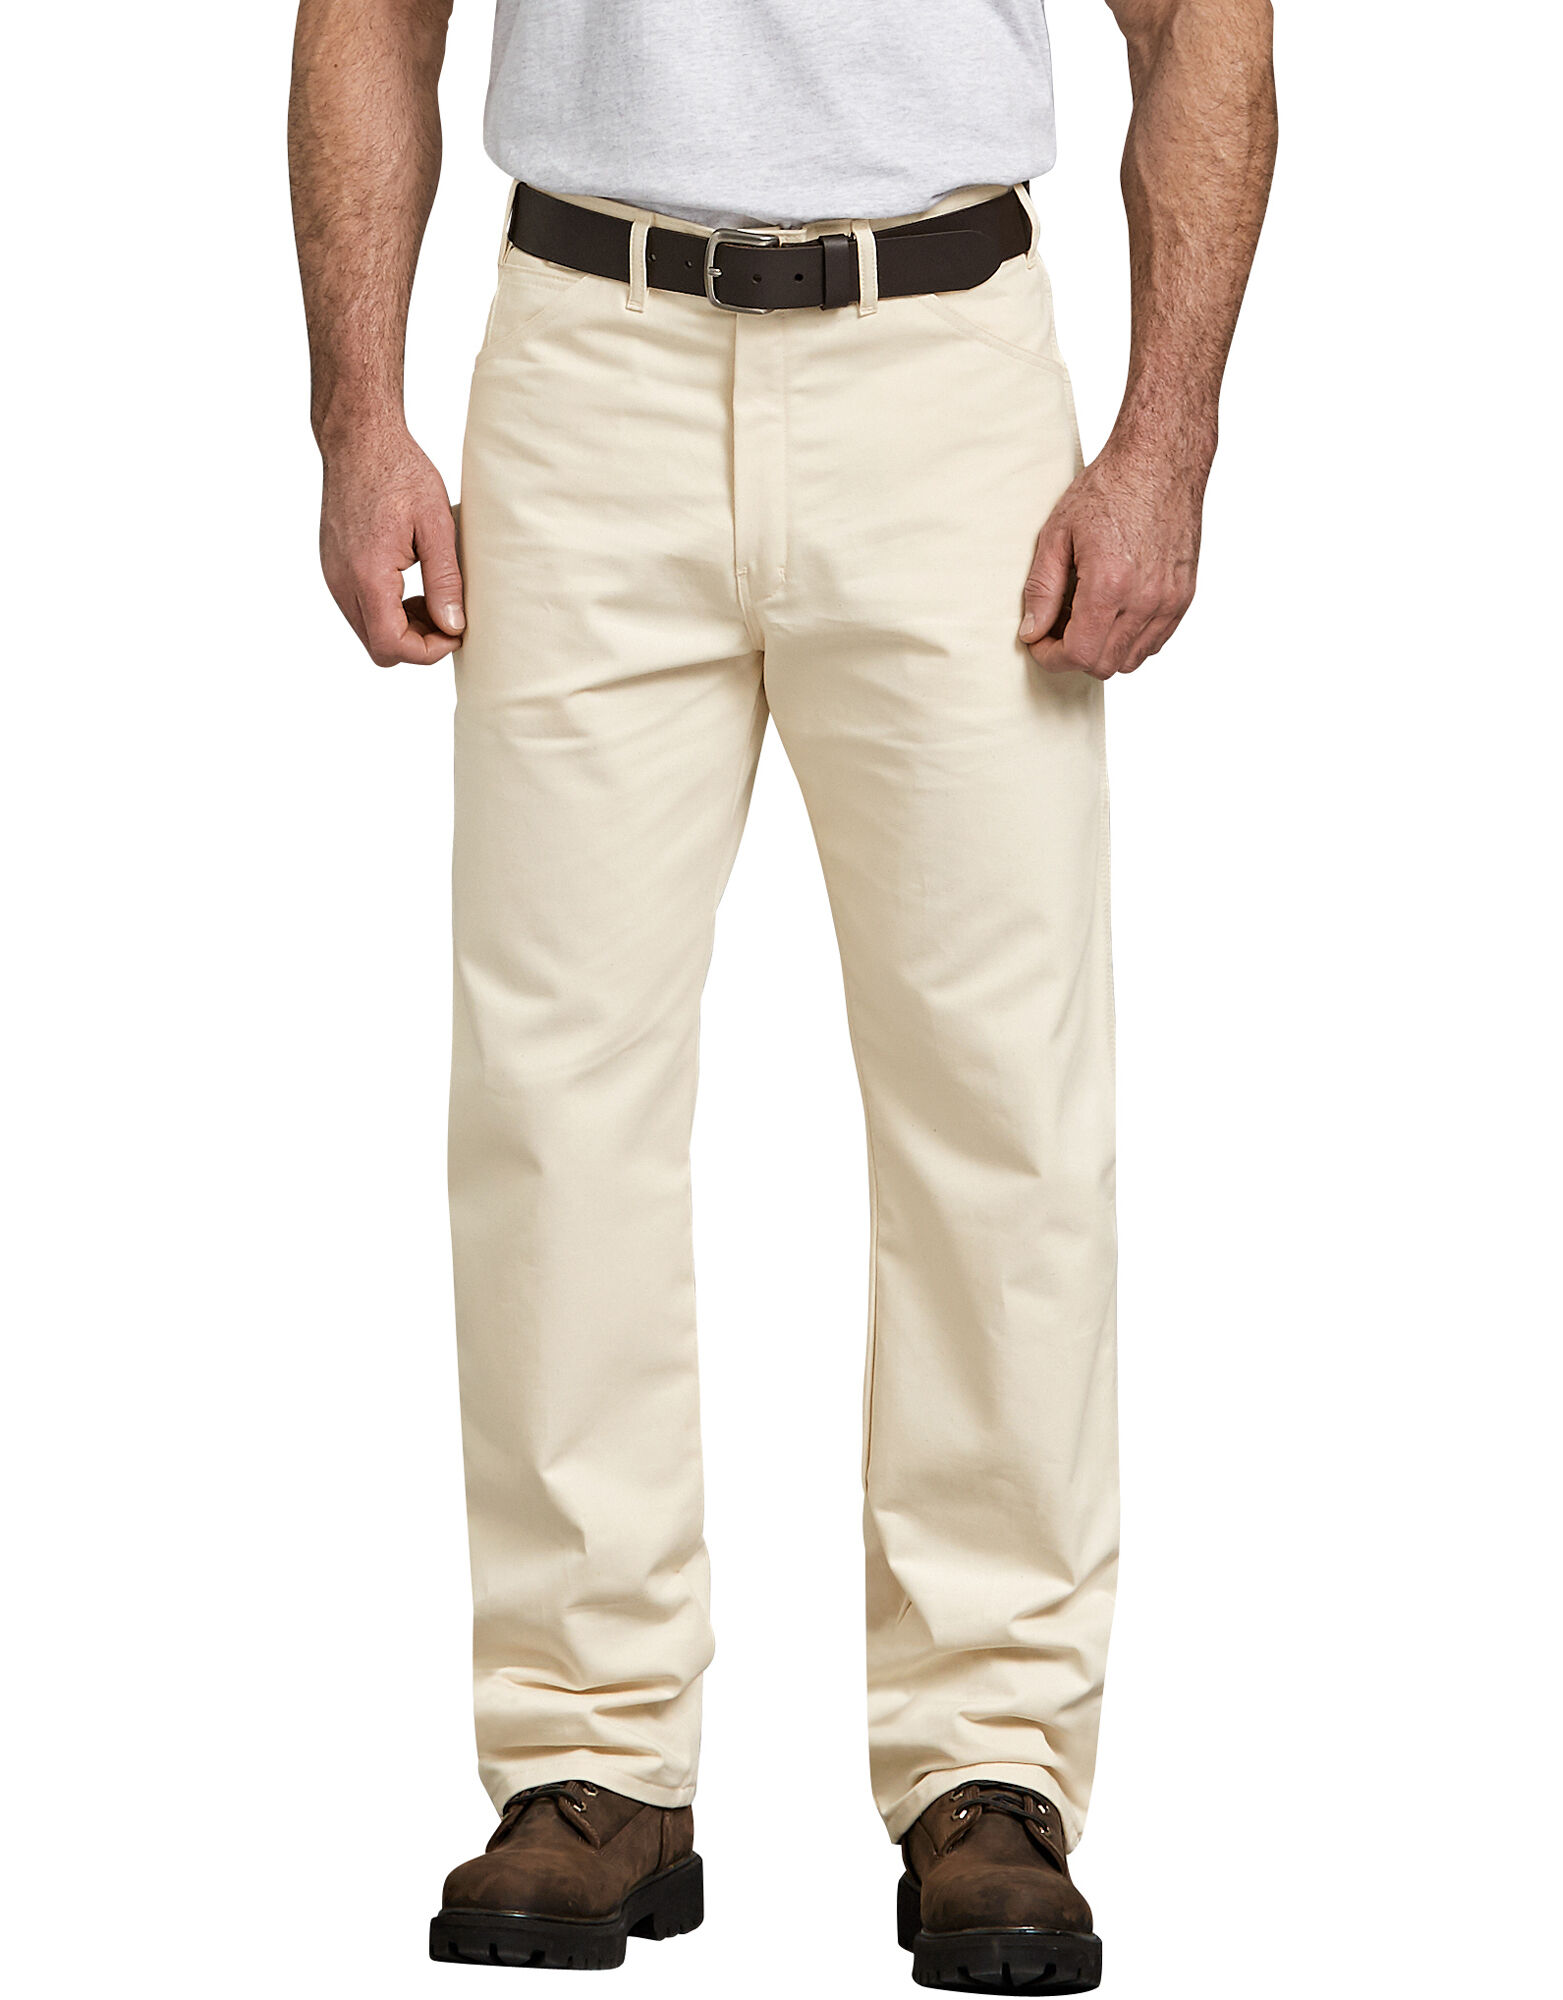 Where To Buy White Pants For Men